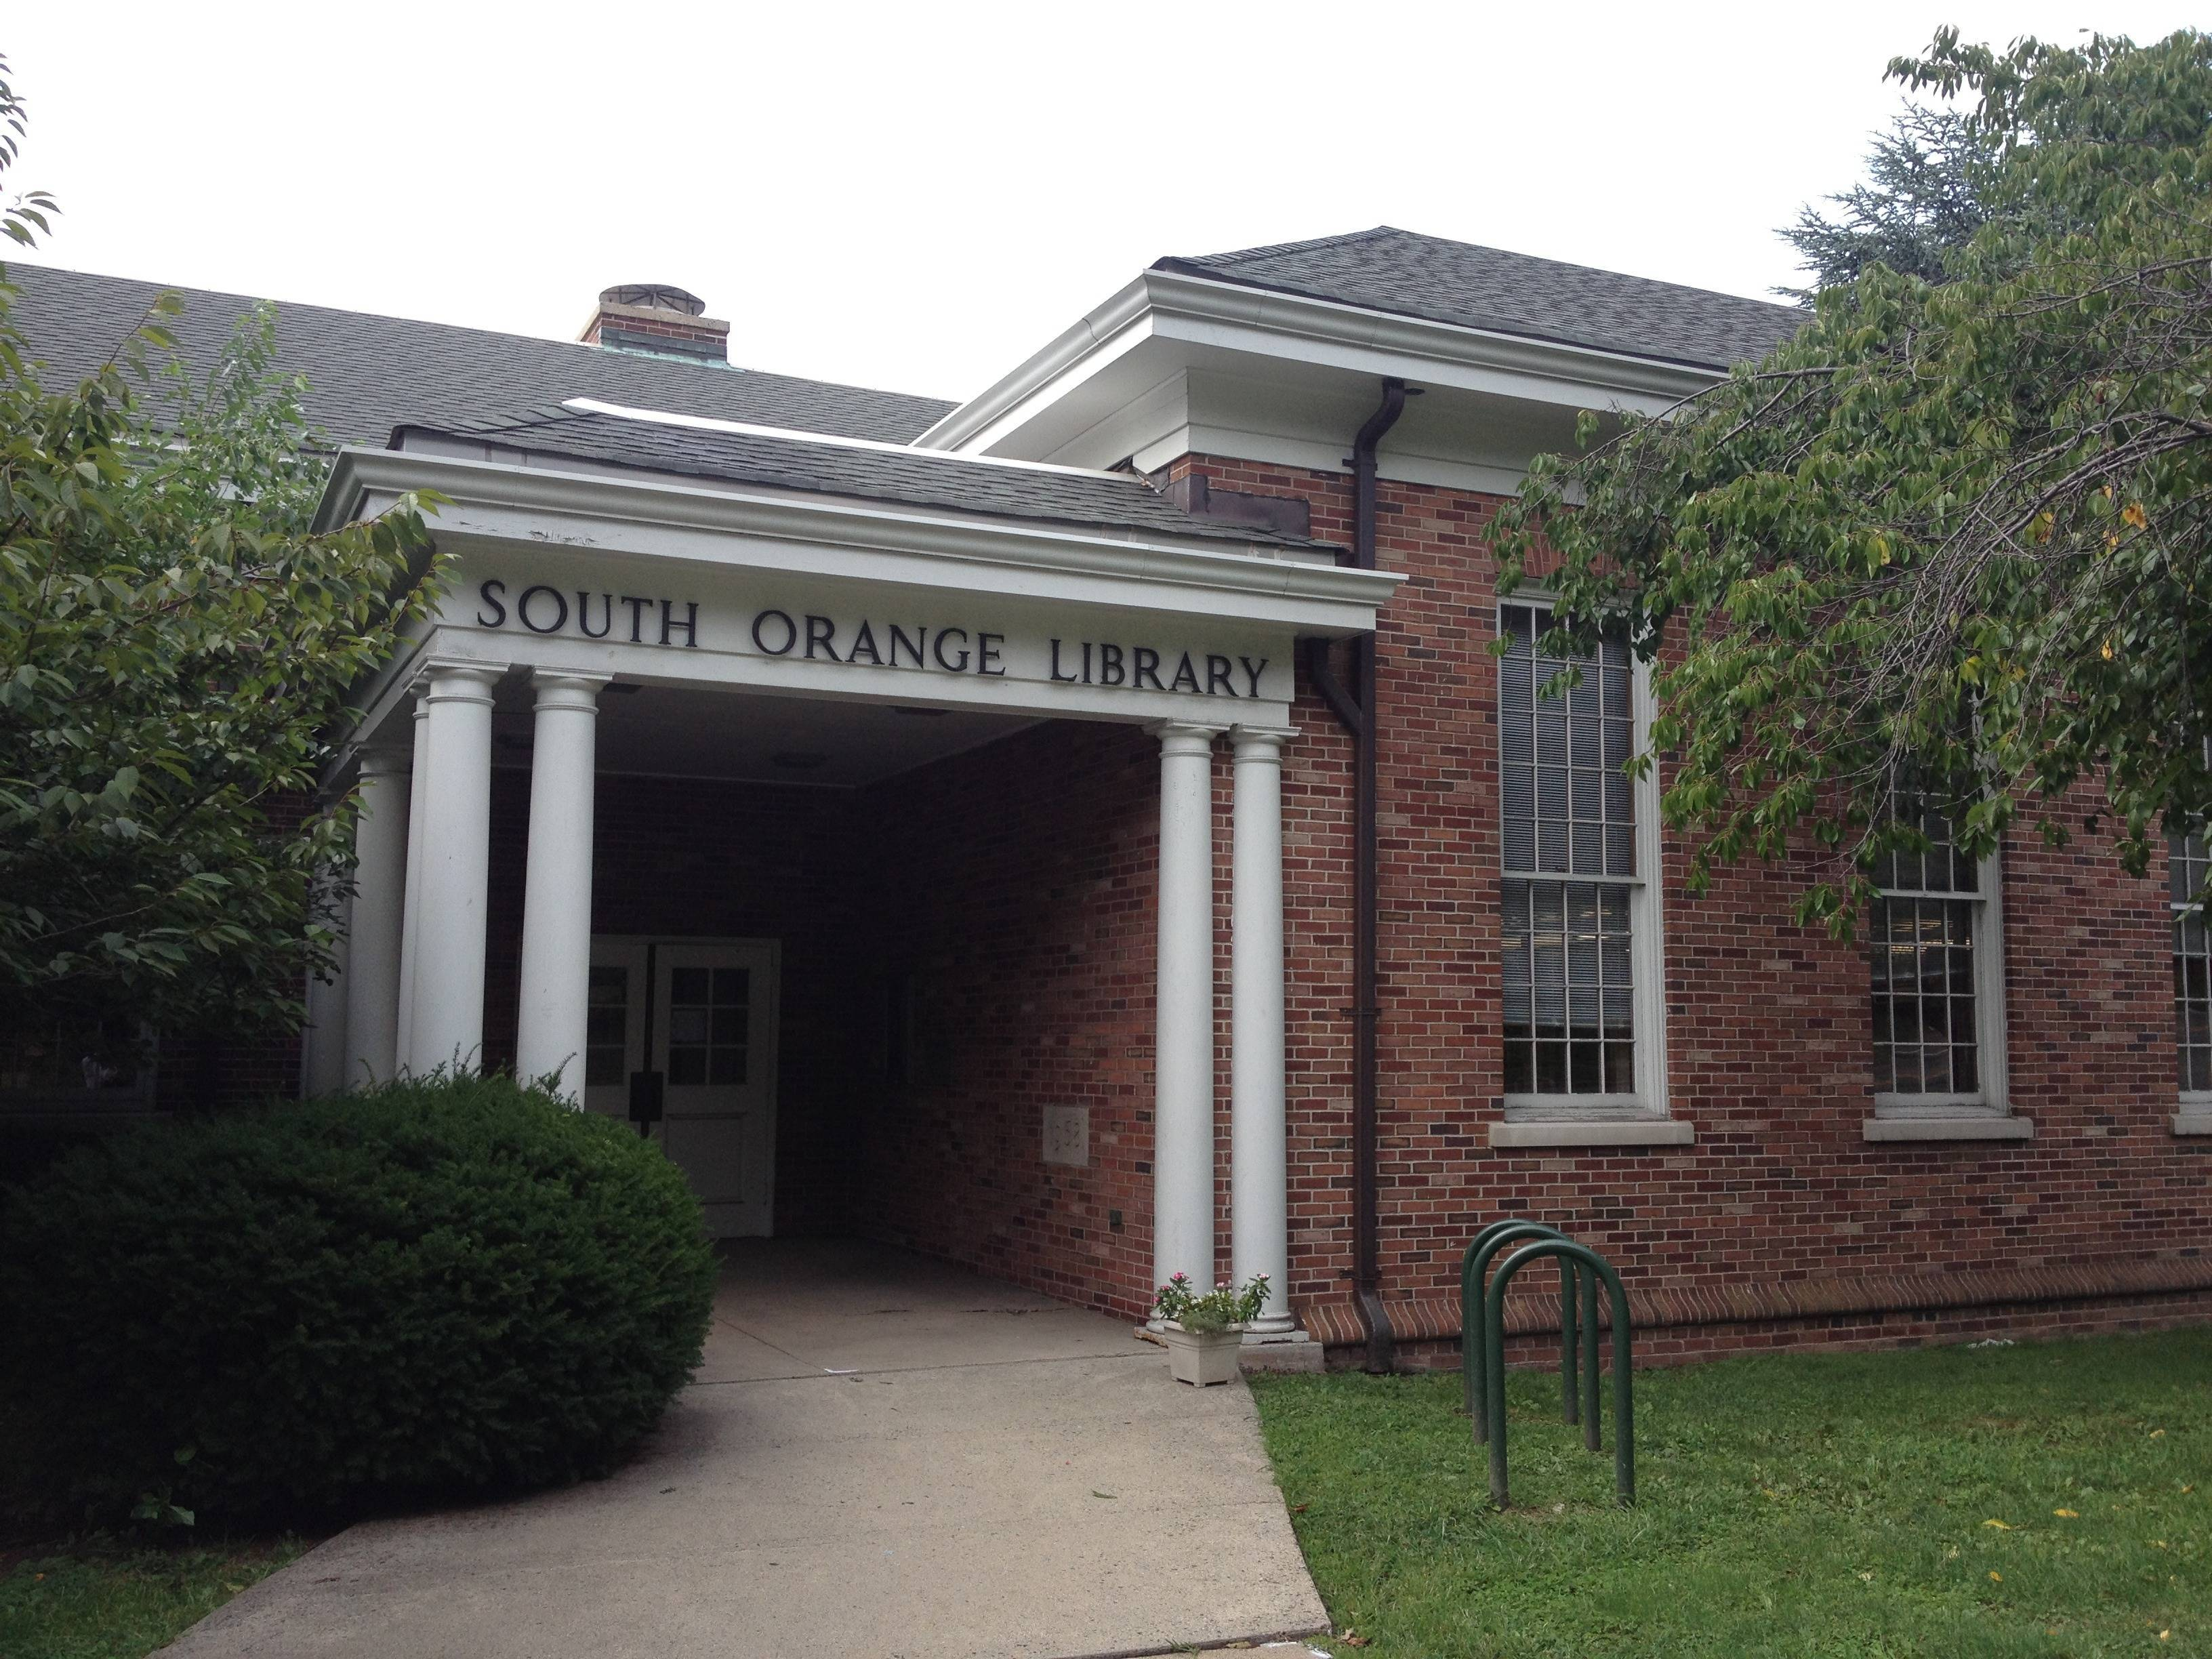 2b69103b14faef3aa2ef_South_Orange_Library.JPG